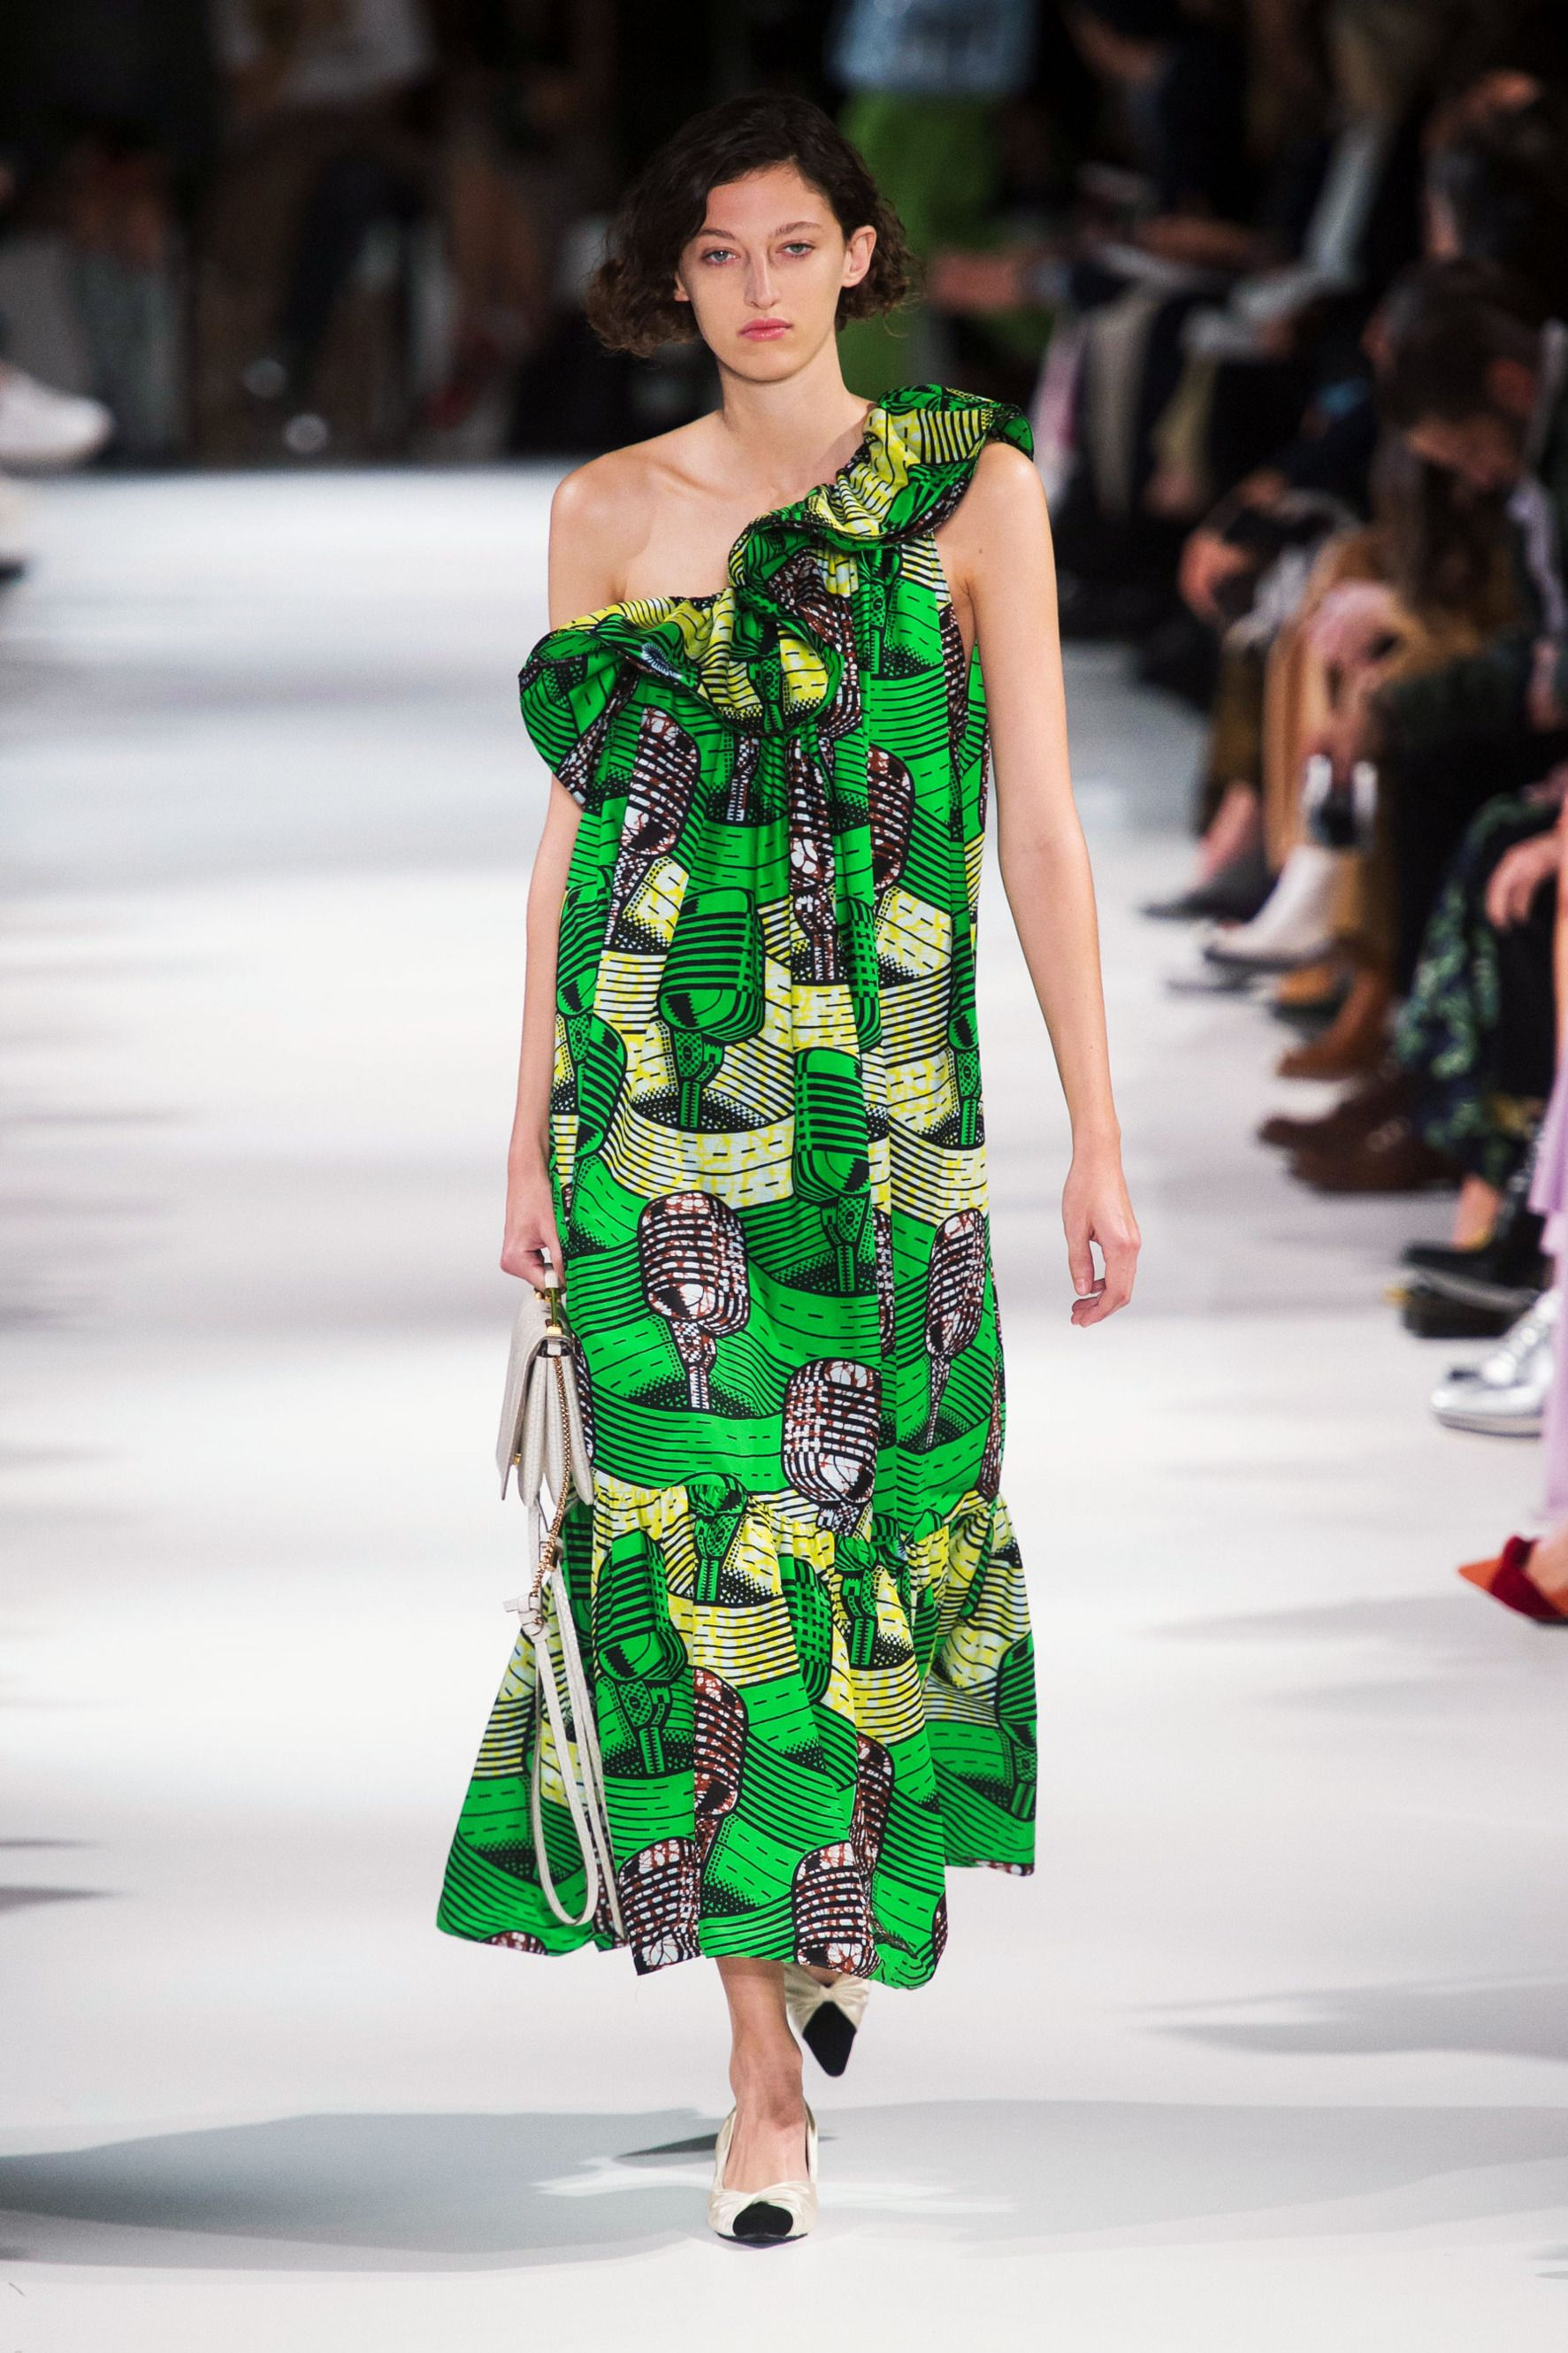 077e6af8abb Inspiration or Cultural Appropriation  Stella McCartney SS18